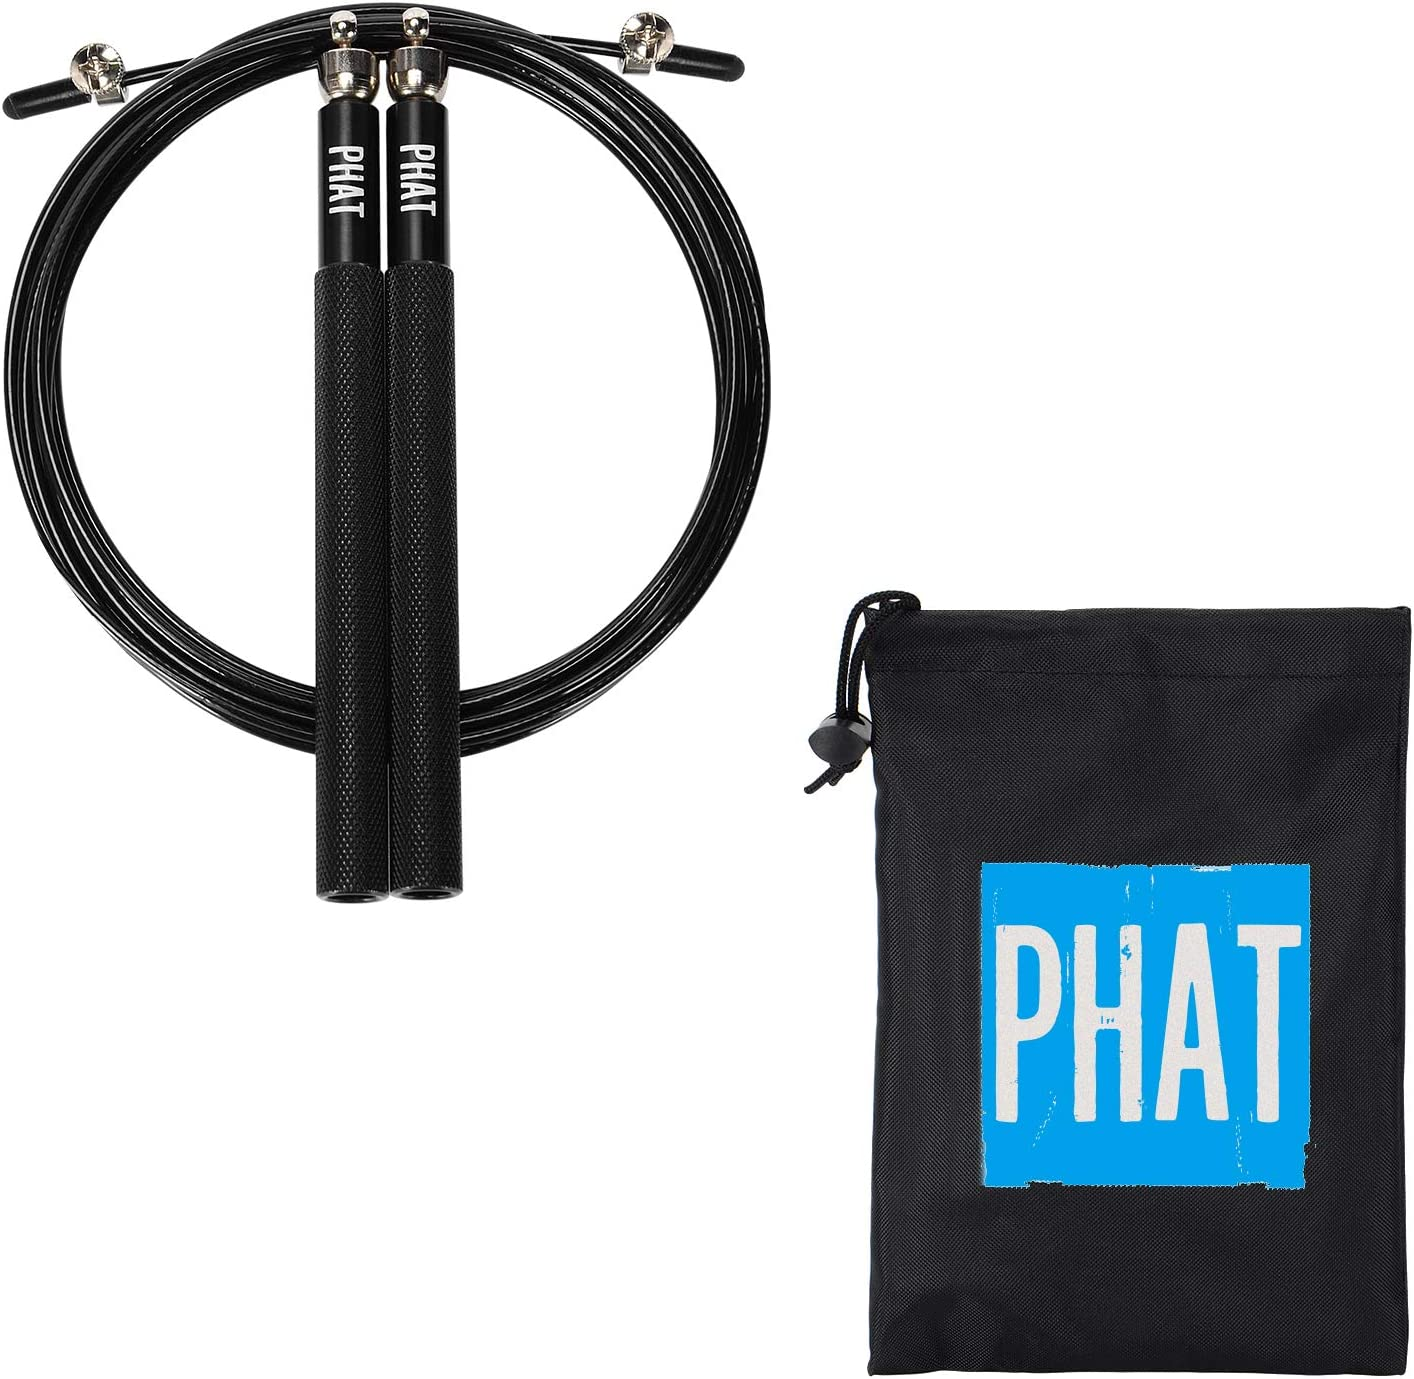 PHAT/™ Jump Rope /& Skipping Rope Adjustable to All Height Black 360/° Swivel Ball Bearing Martial Arts or Just Staying Fit Endurance Workout for Boxing